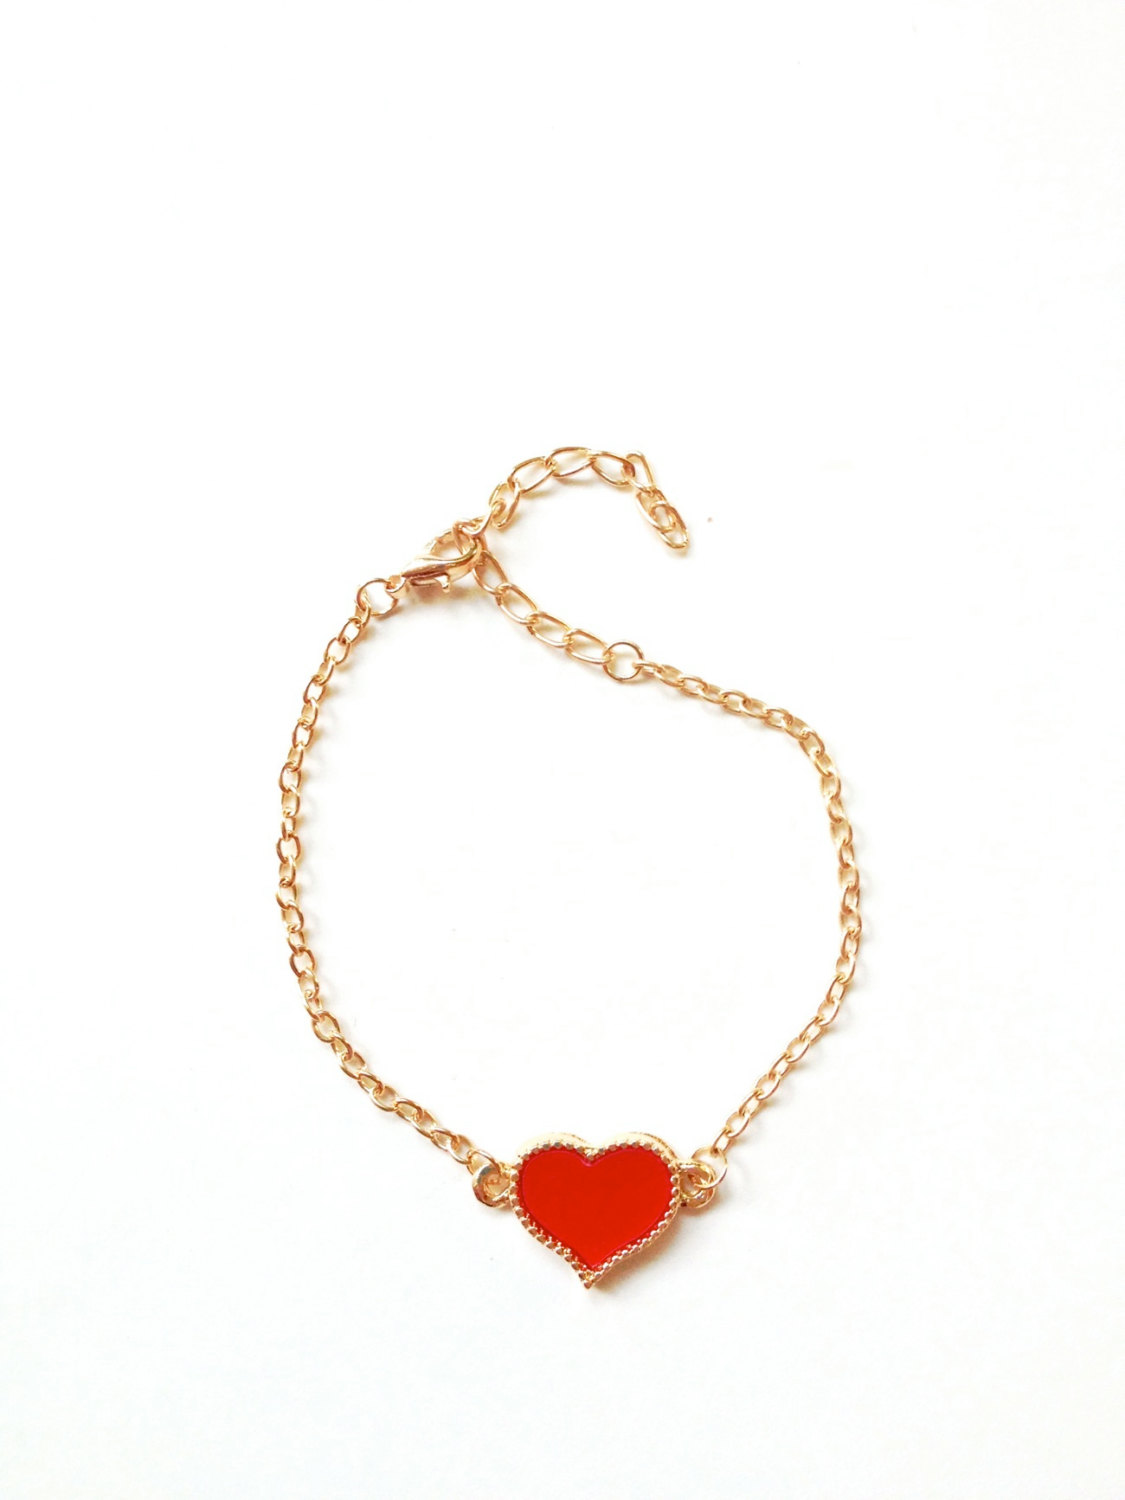 arrival pure bracelet item knitted new string red gold women